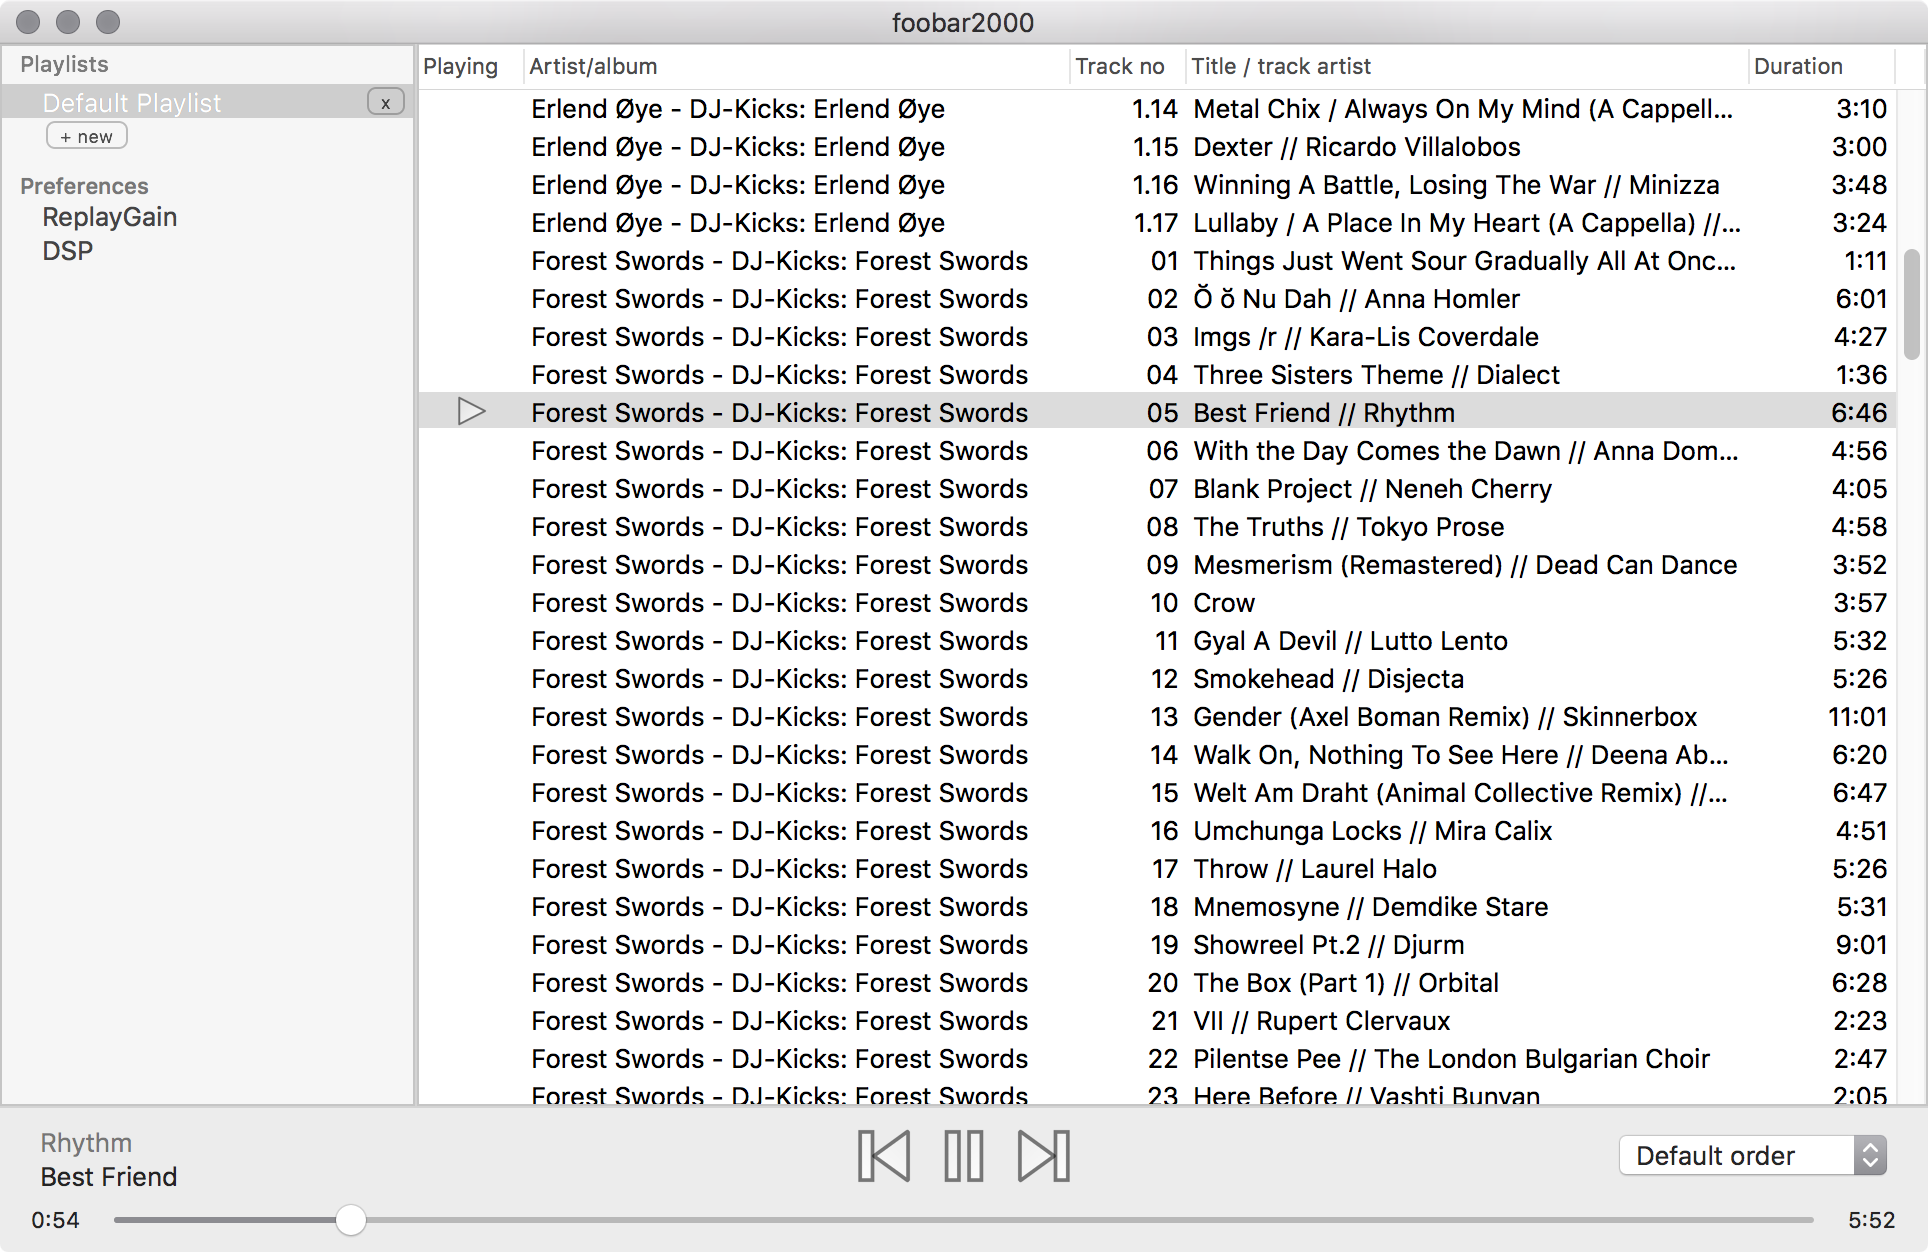 That foobar2000 for Mac is incomplete should be no surprise